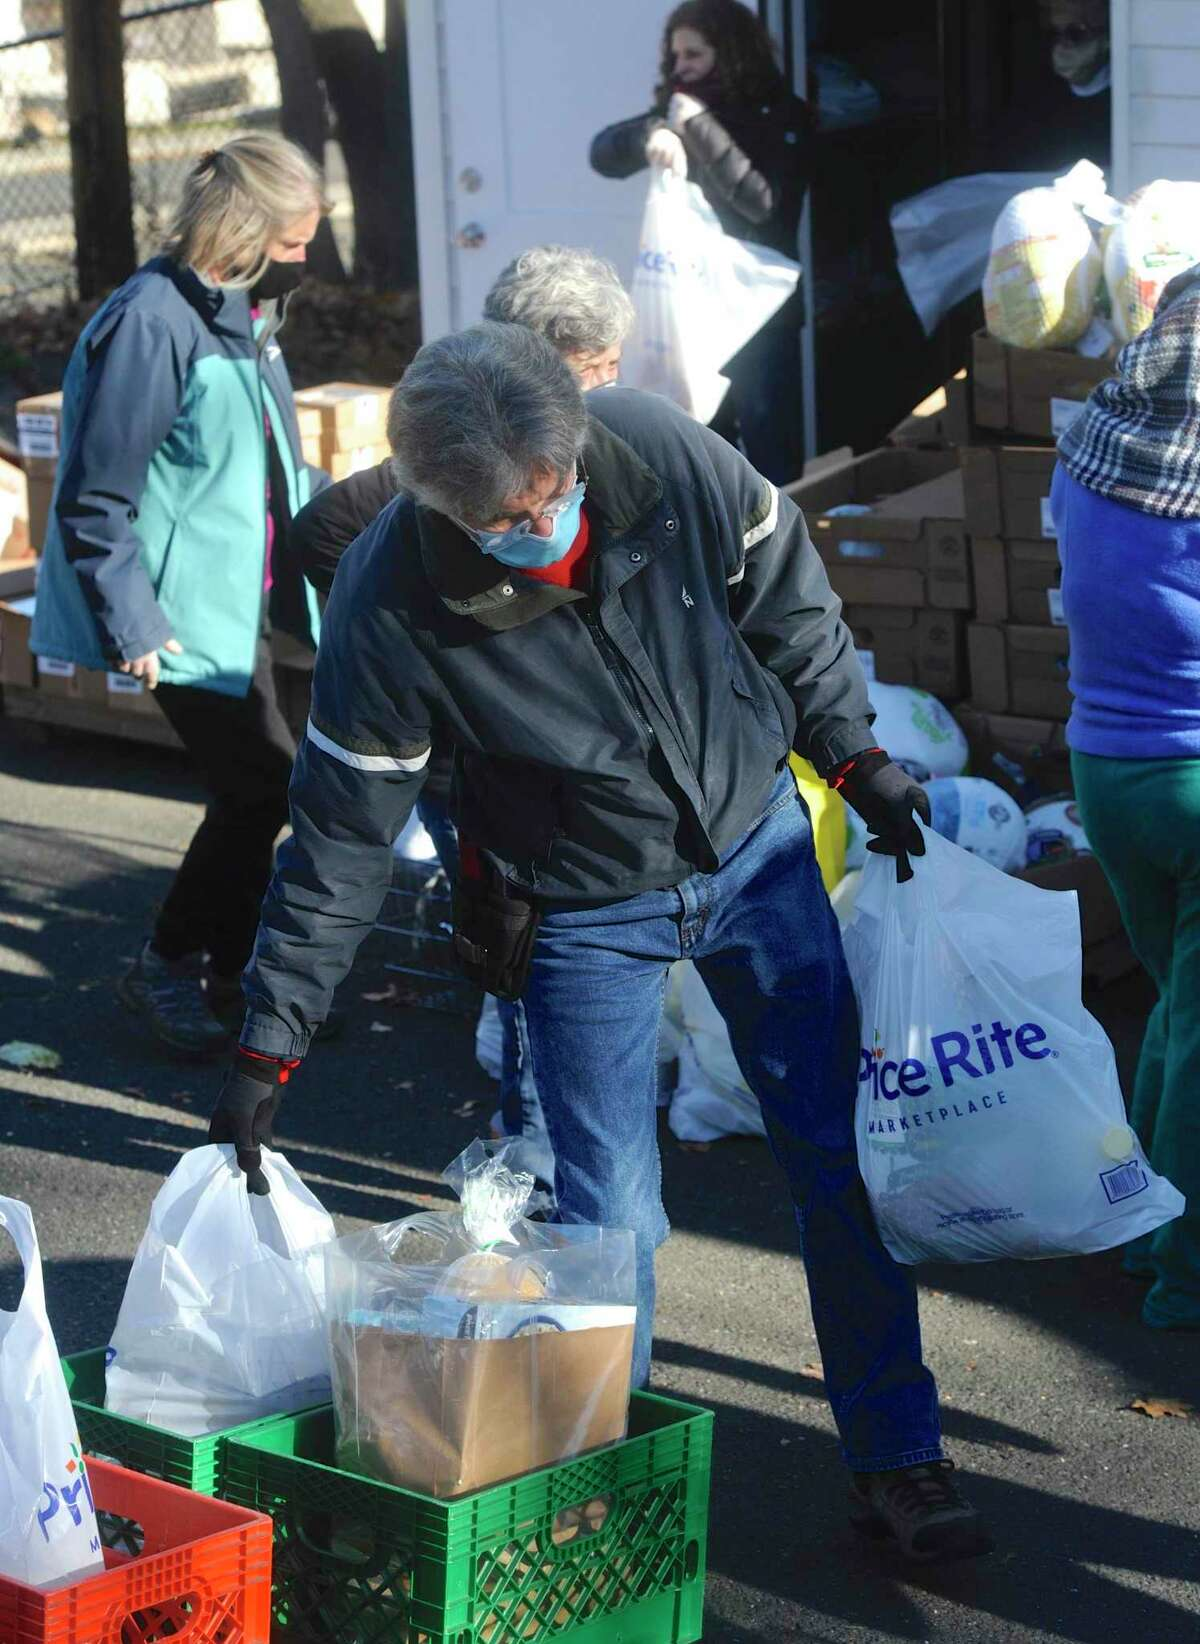 Volunteer Pete Jeffrey, of Danbury, carries bags of food to be distributed by the Daily Bread Food Pantry on Tuesday morning, November 24, 2020, in Danbury, Conn. The pantry distributed about 200 turkeys and other food for Thanksgiving.